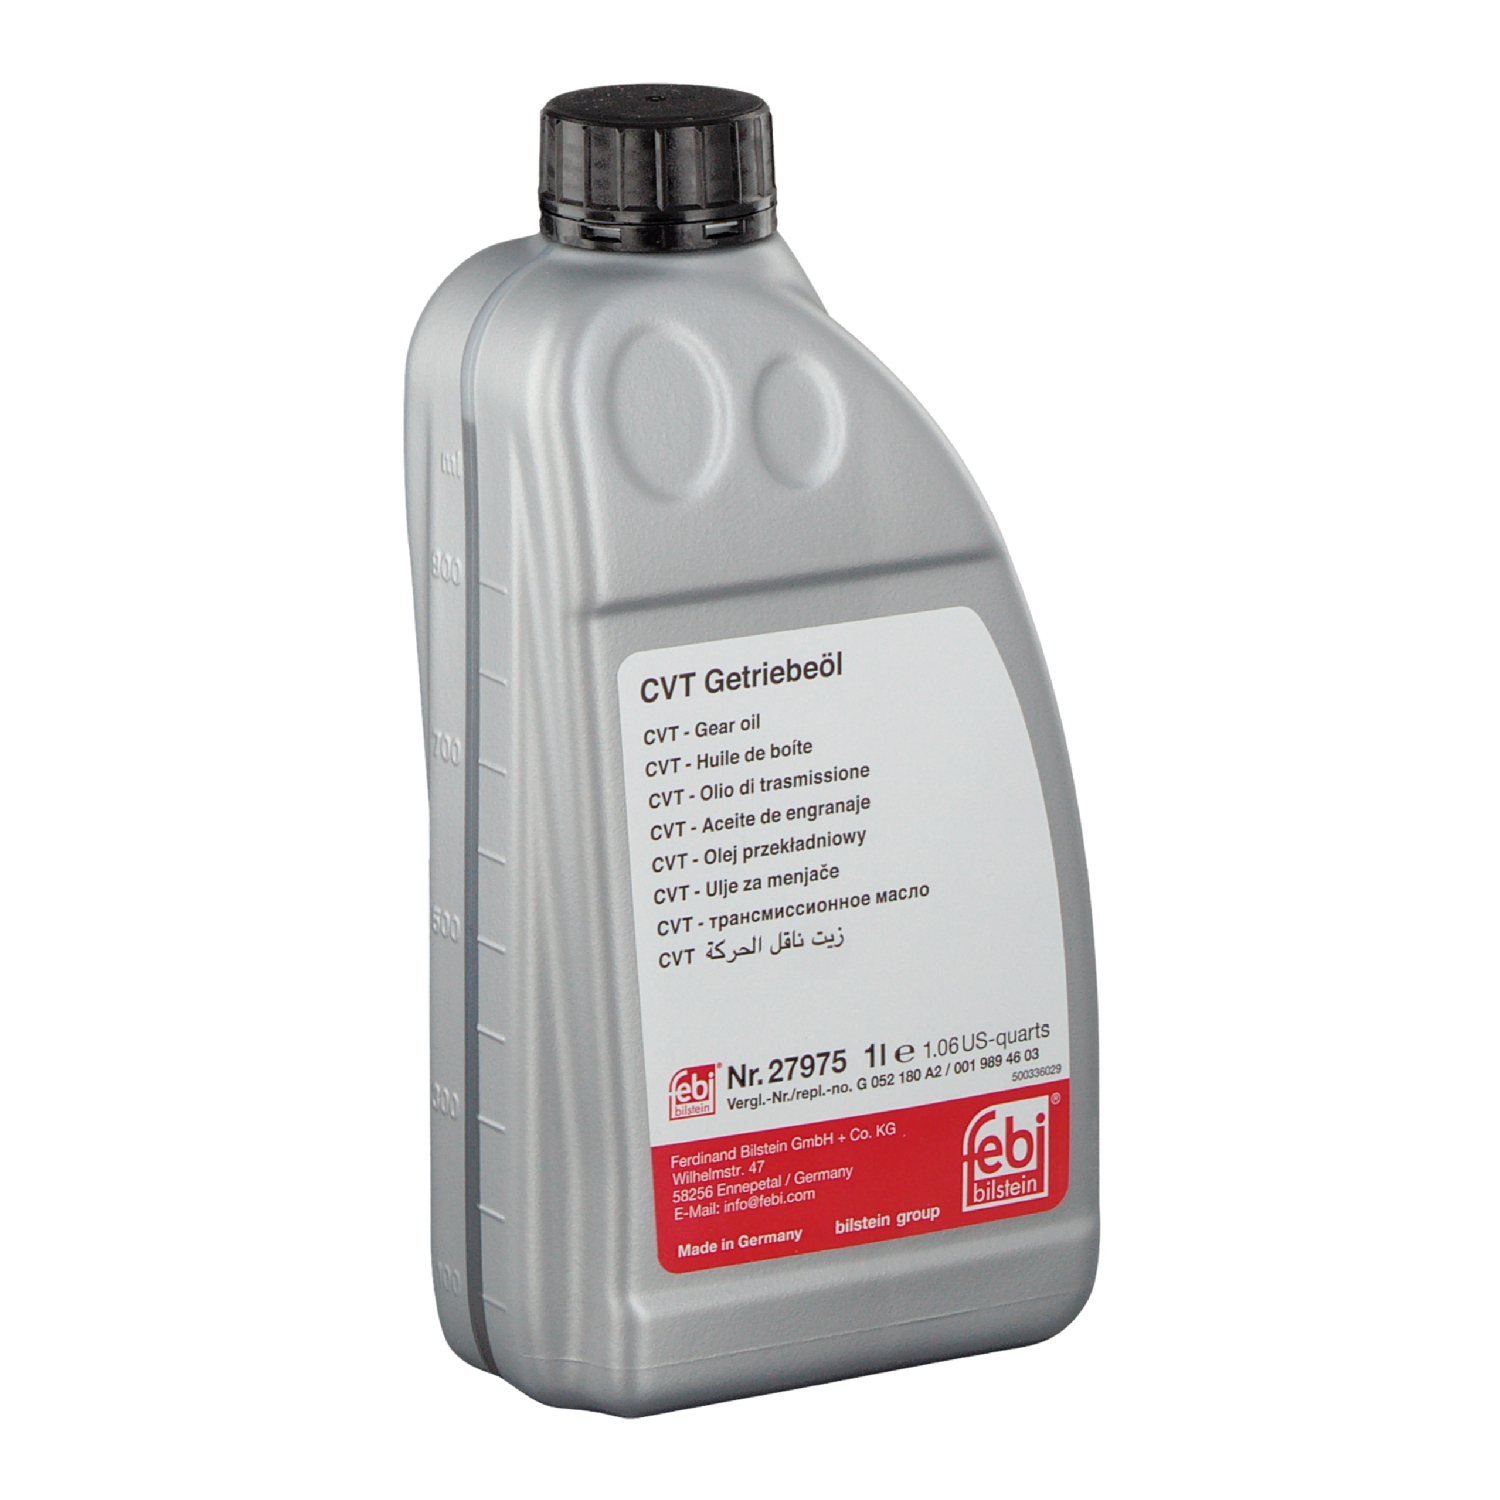 febi | 27975 | Automatic Transmission Fluid (ATF) for CVT gearbox